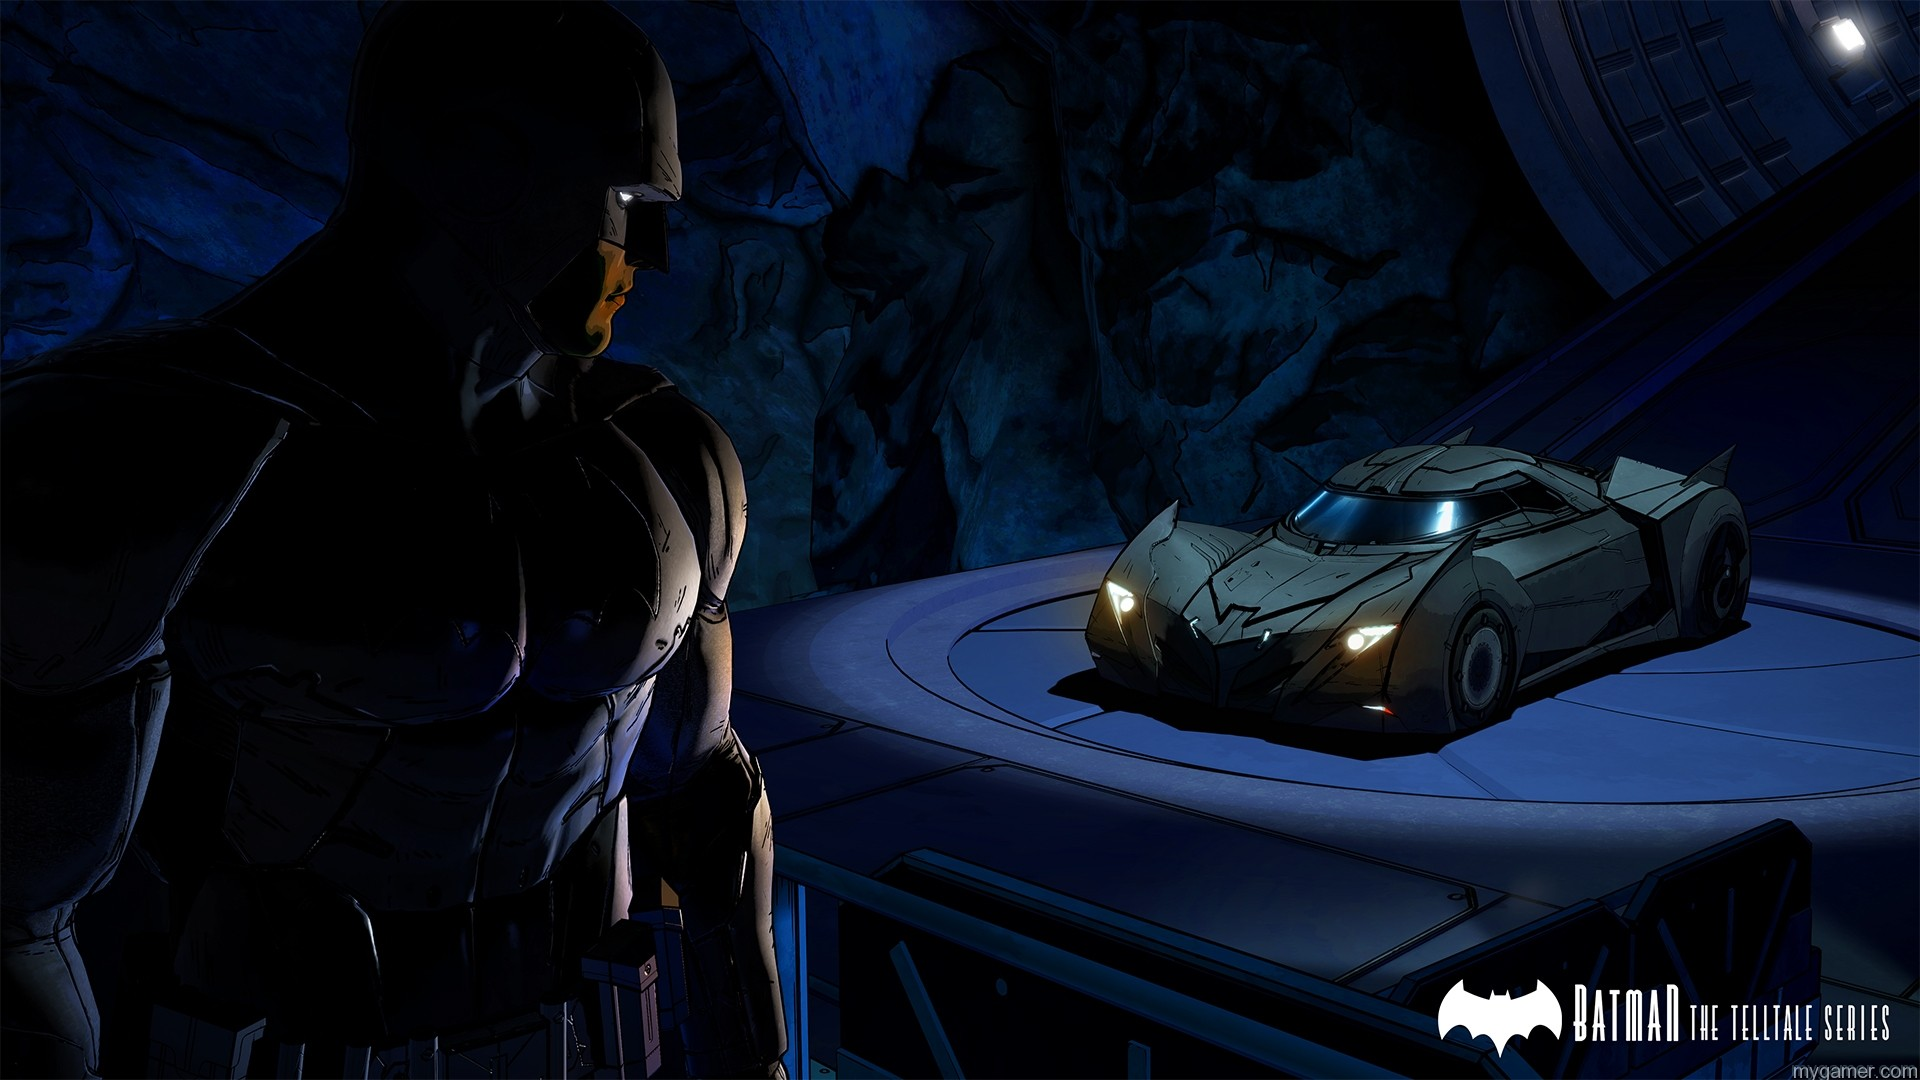 batman-telltale-ep1-car Batman: The Telltale Series Episode 1 PC Review Batman: The Telltale Series Episode 1 Realm of Shadows PC Review batman telltale ep1 car